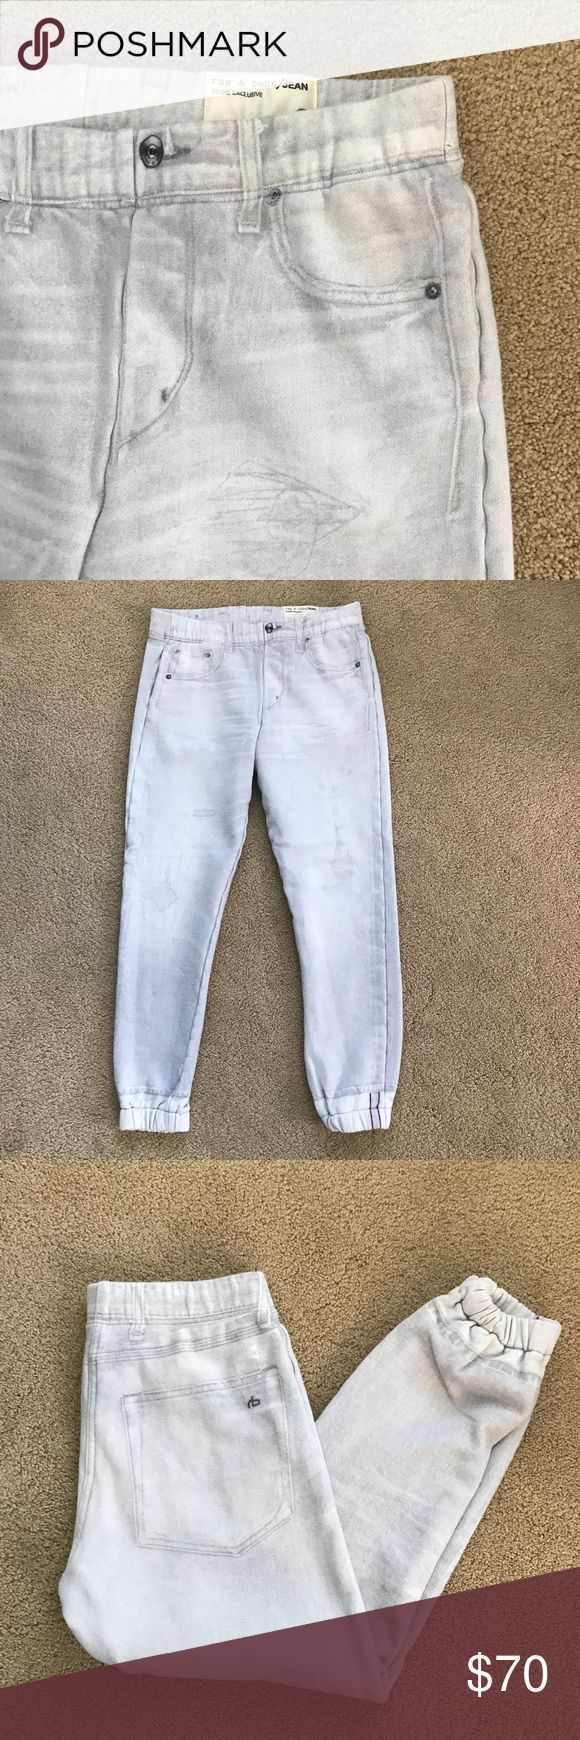 Rag & Bone painted jeans jogger ankle pants Like new condition. Worn twice. Washed once. The pockets zipper buttons are all painted. There are pained distress throughout. Super comfortable. It's not thin. It's made of heavy cotton 100% cotton. Sz S. rag & bone Pants Track Pants & Joggers